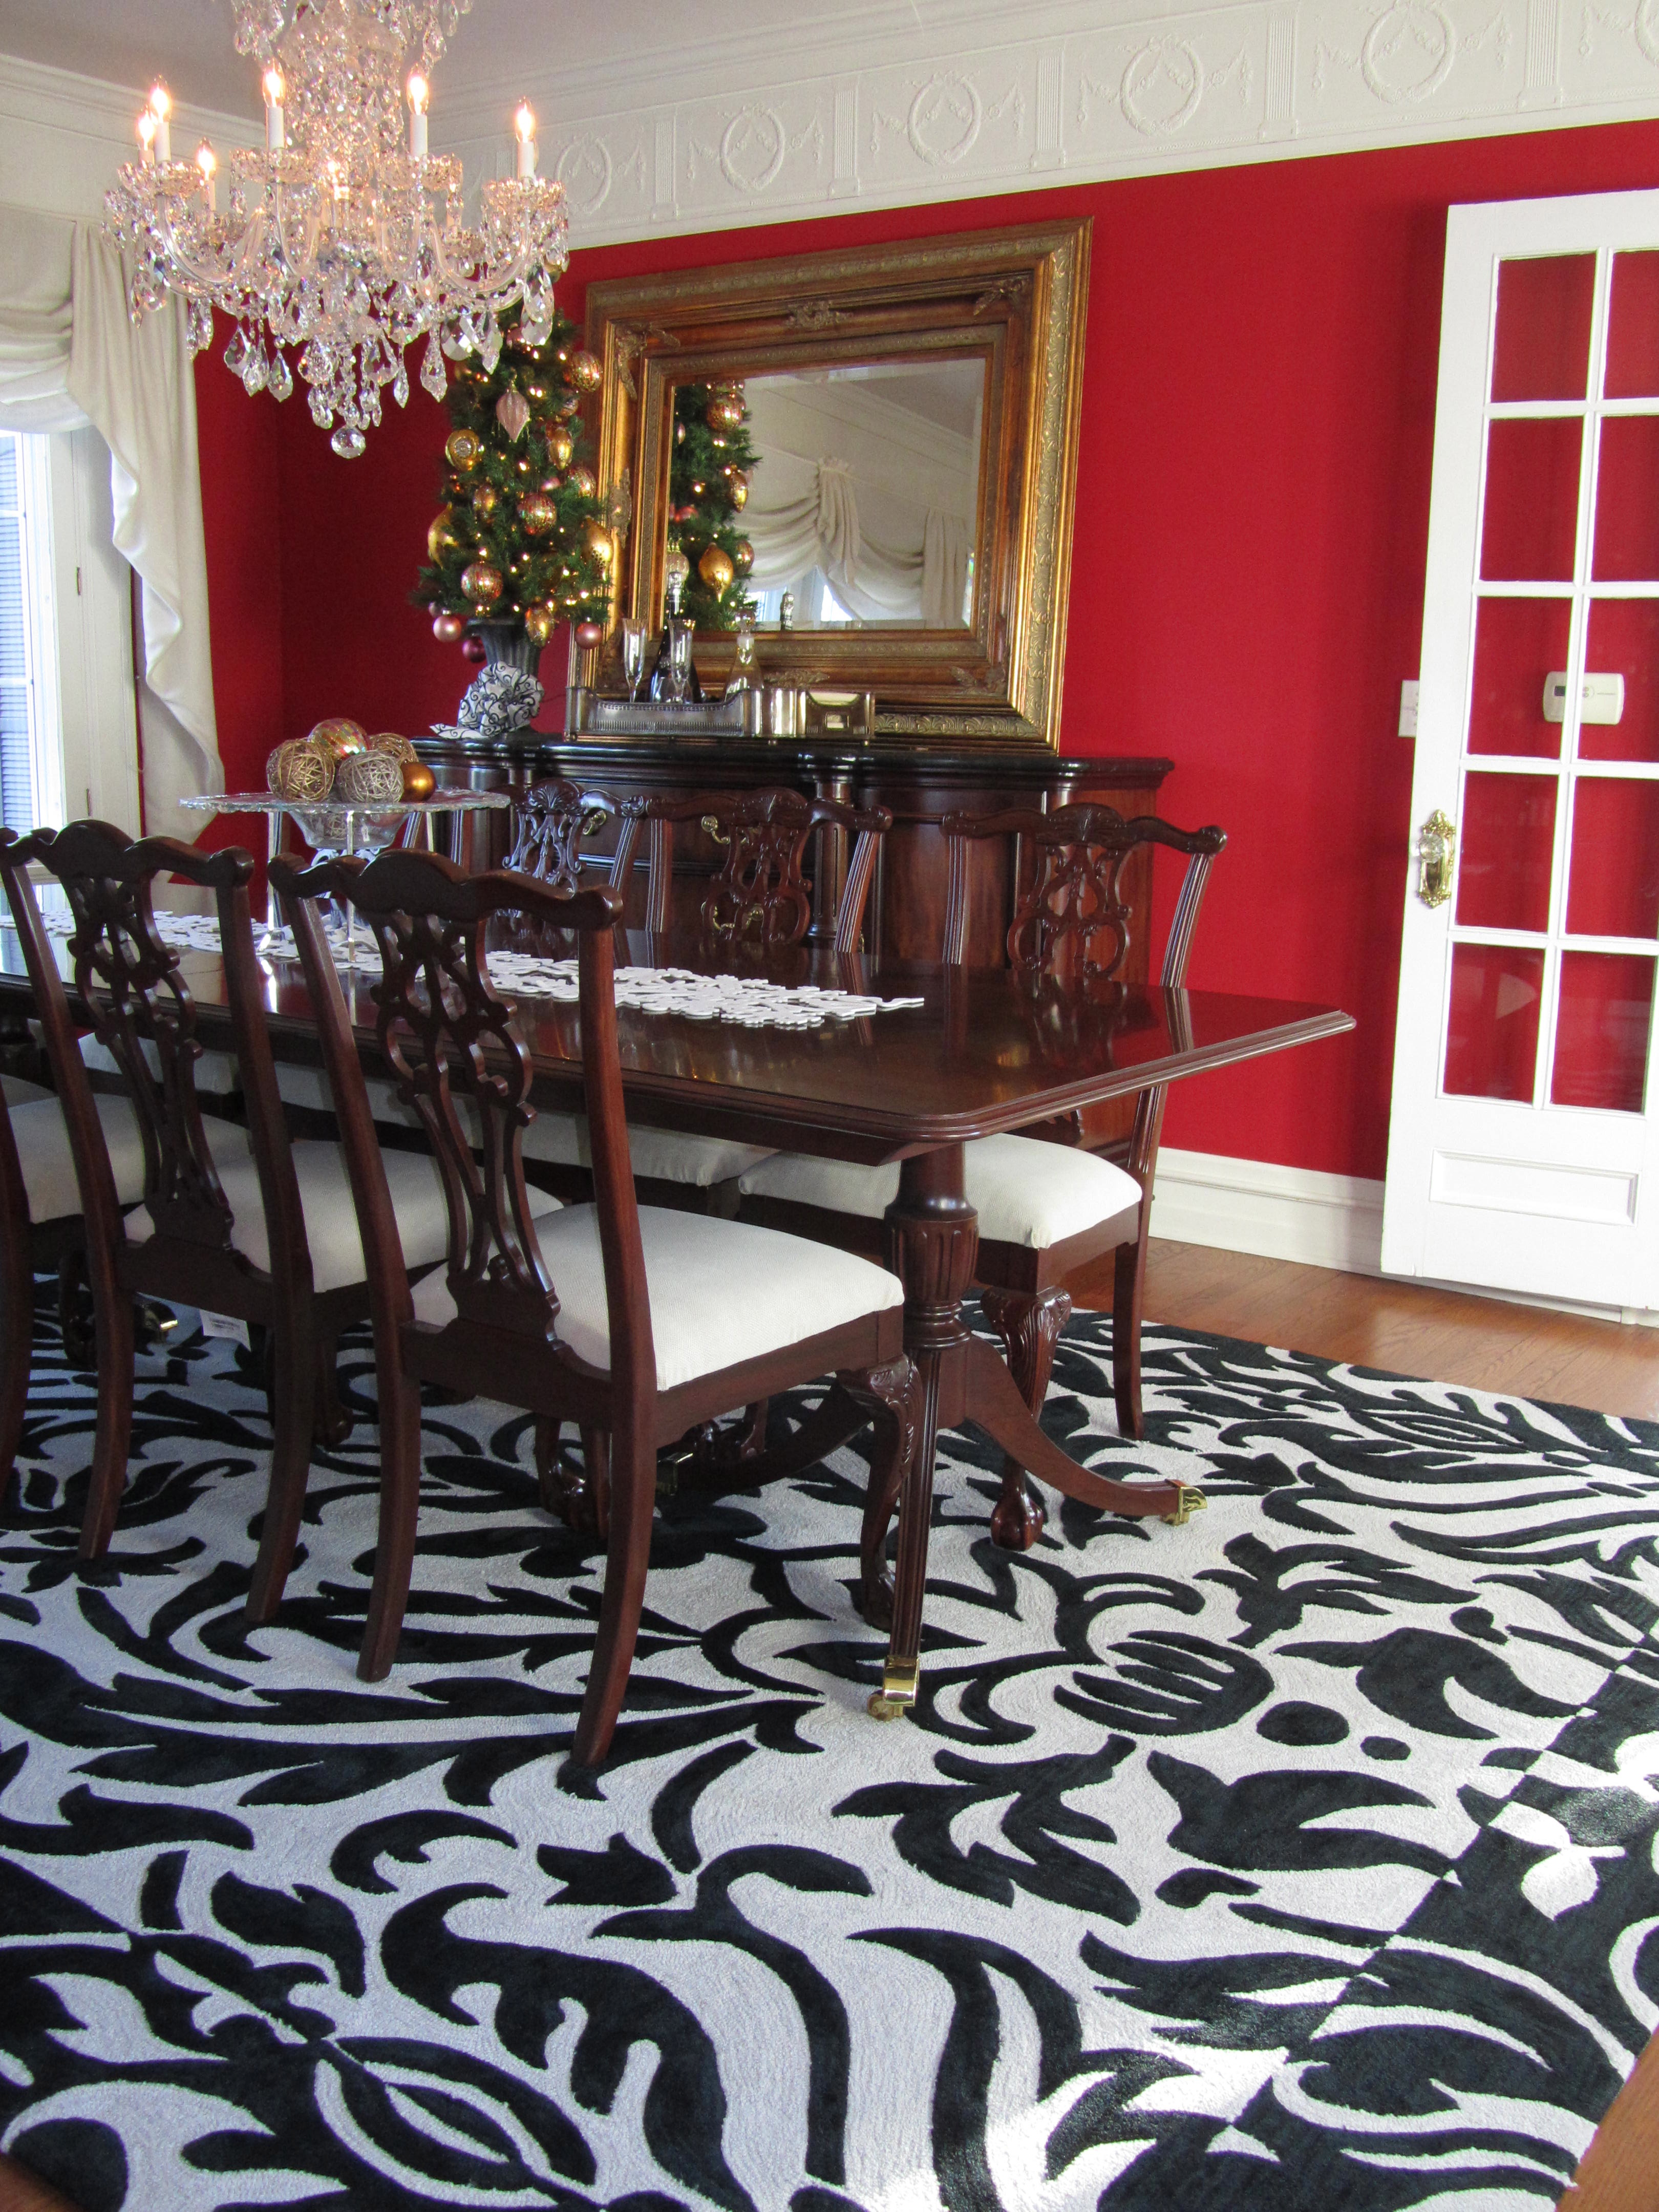 Black white red dining room - I Realize My Red Walls Don T Look Much Different From The Inspiration Photo But It Really Is A Matter Of Degrees The Brighter Lighter Raspberry Color Here